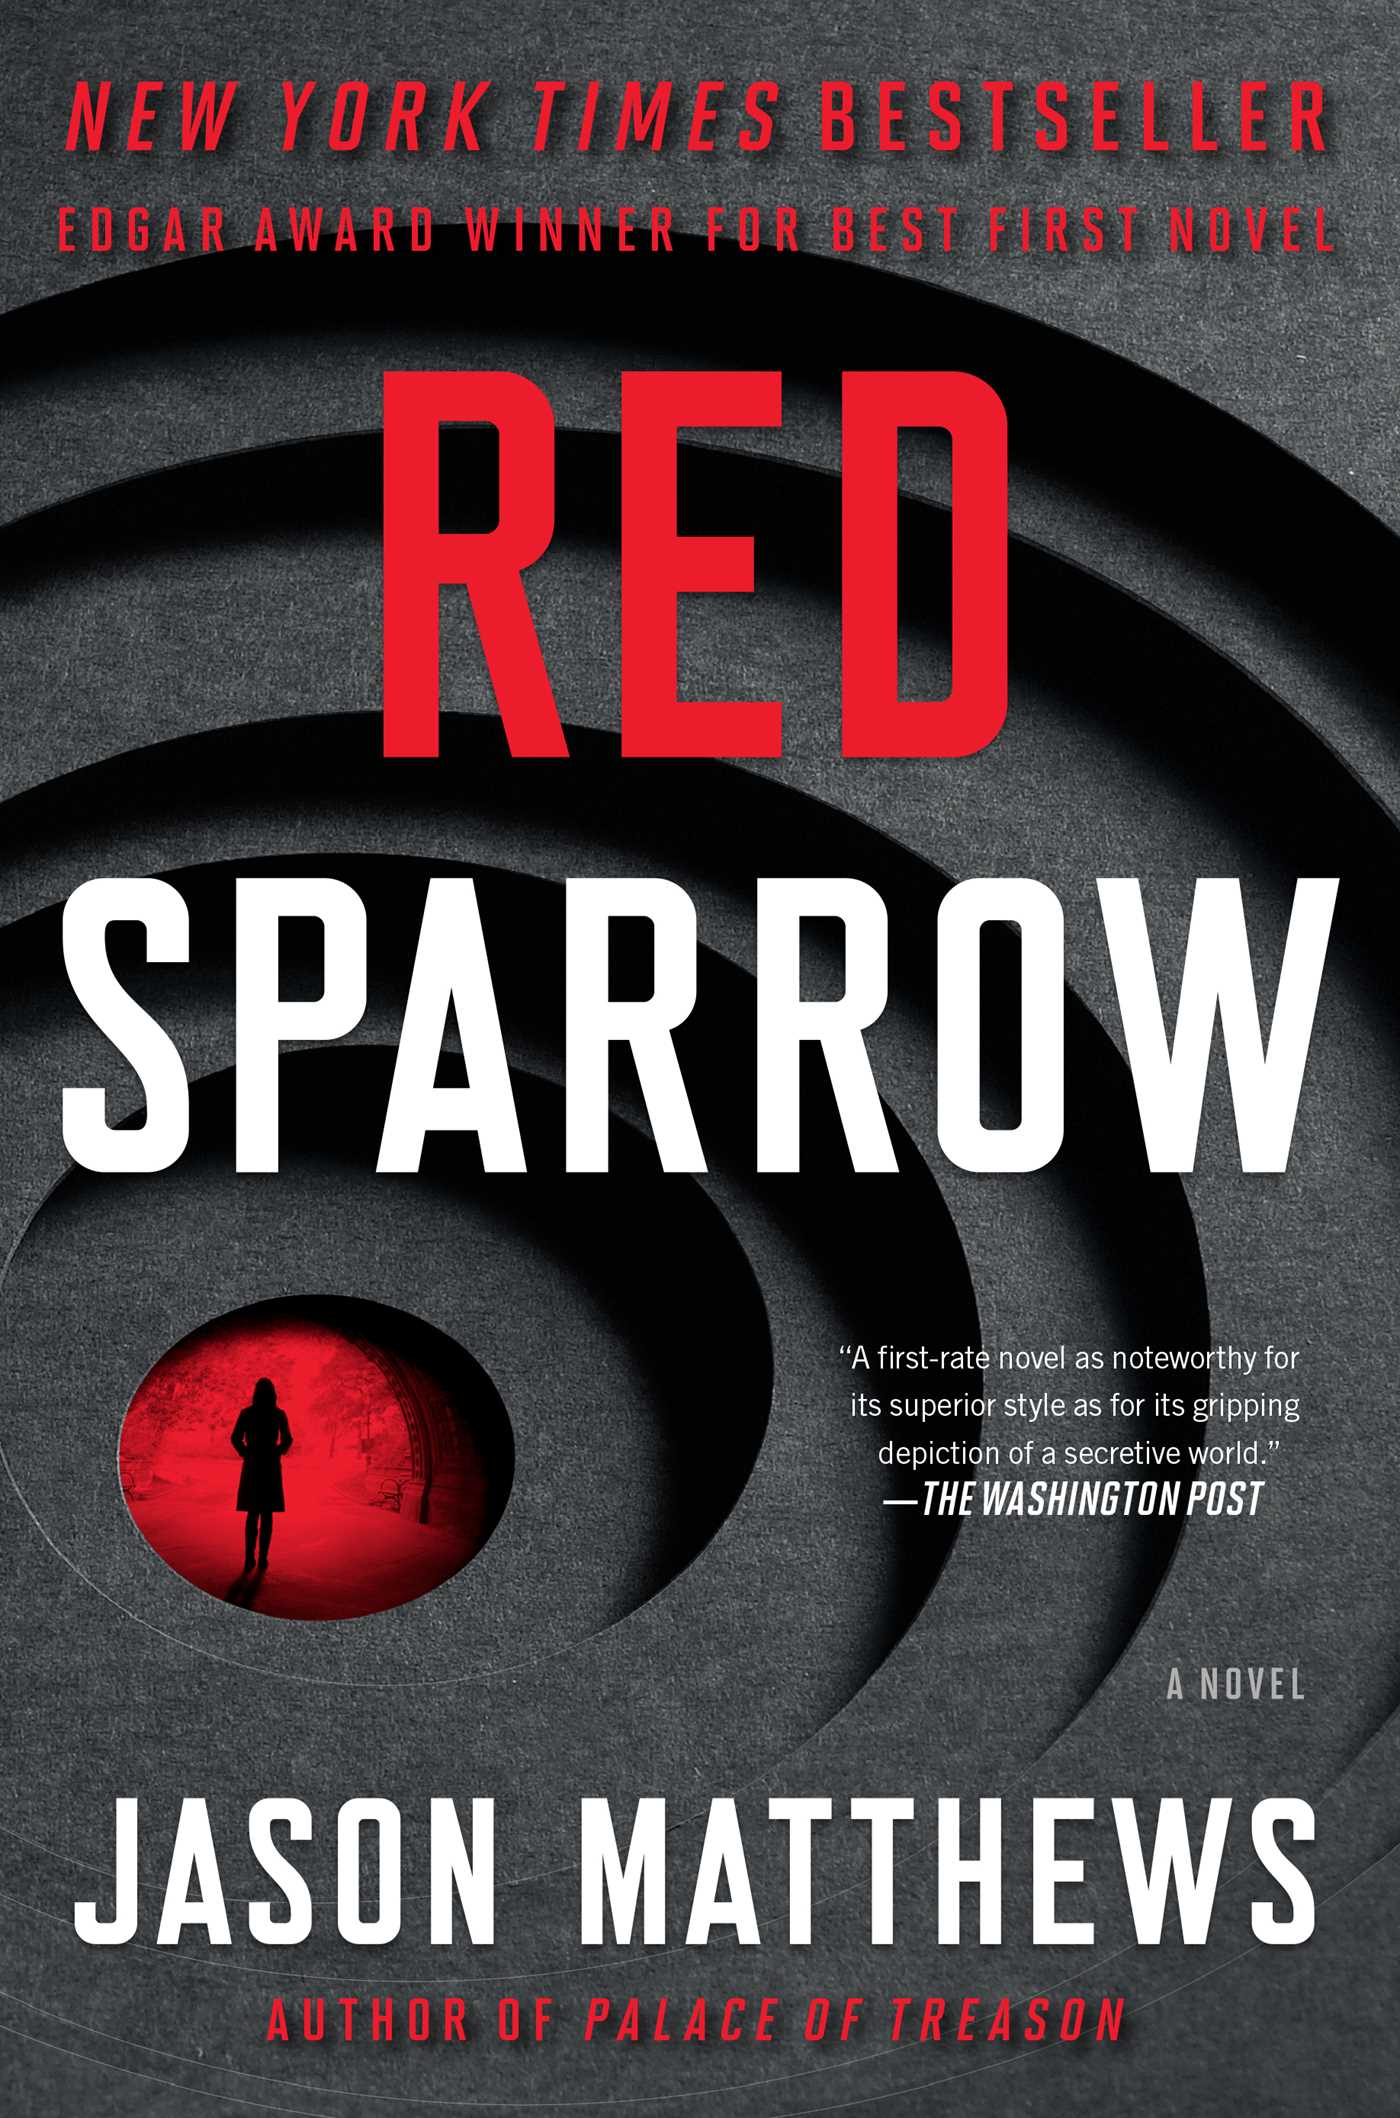 Red sparrow 9781476706122 hr